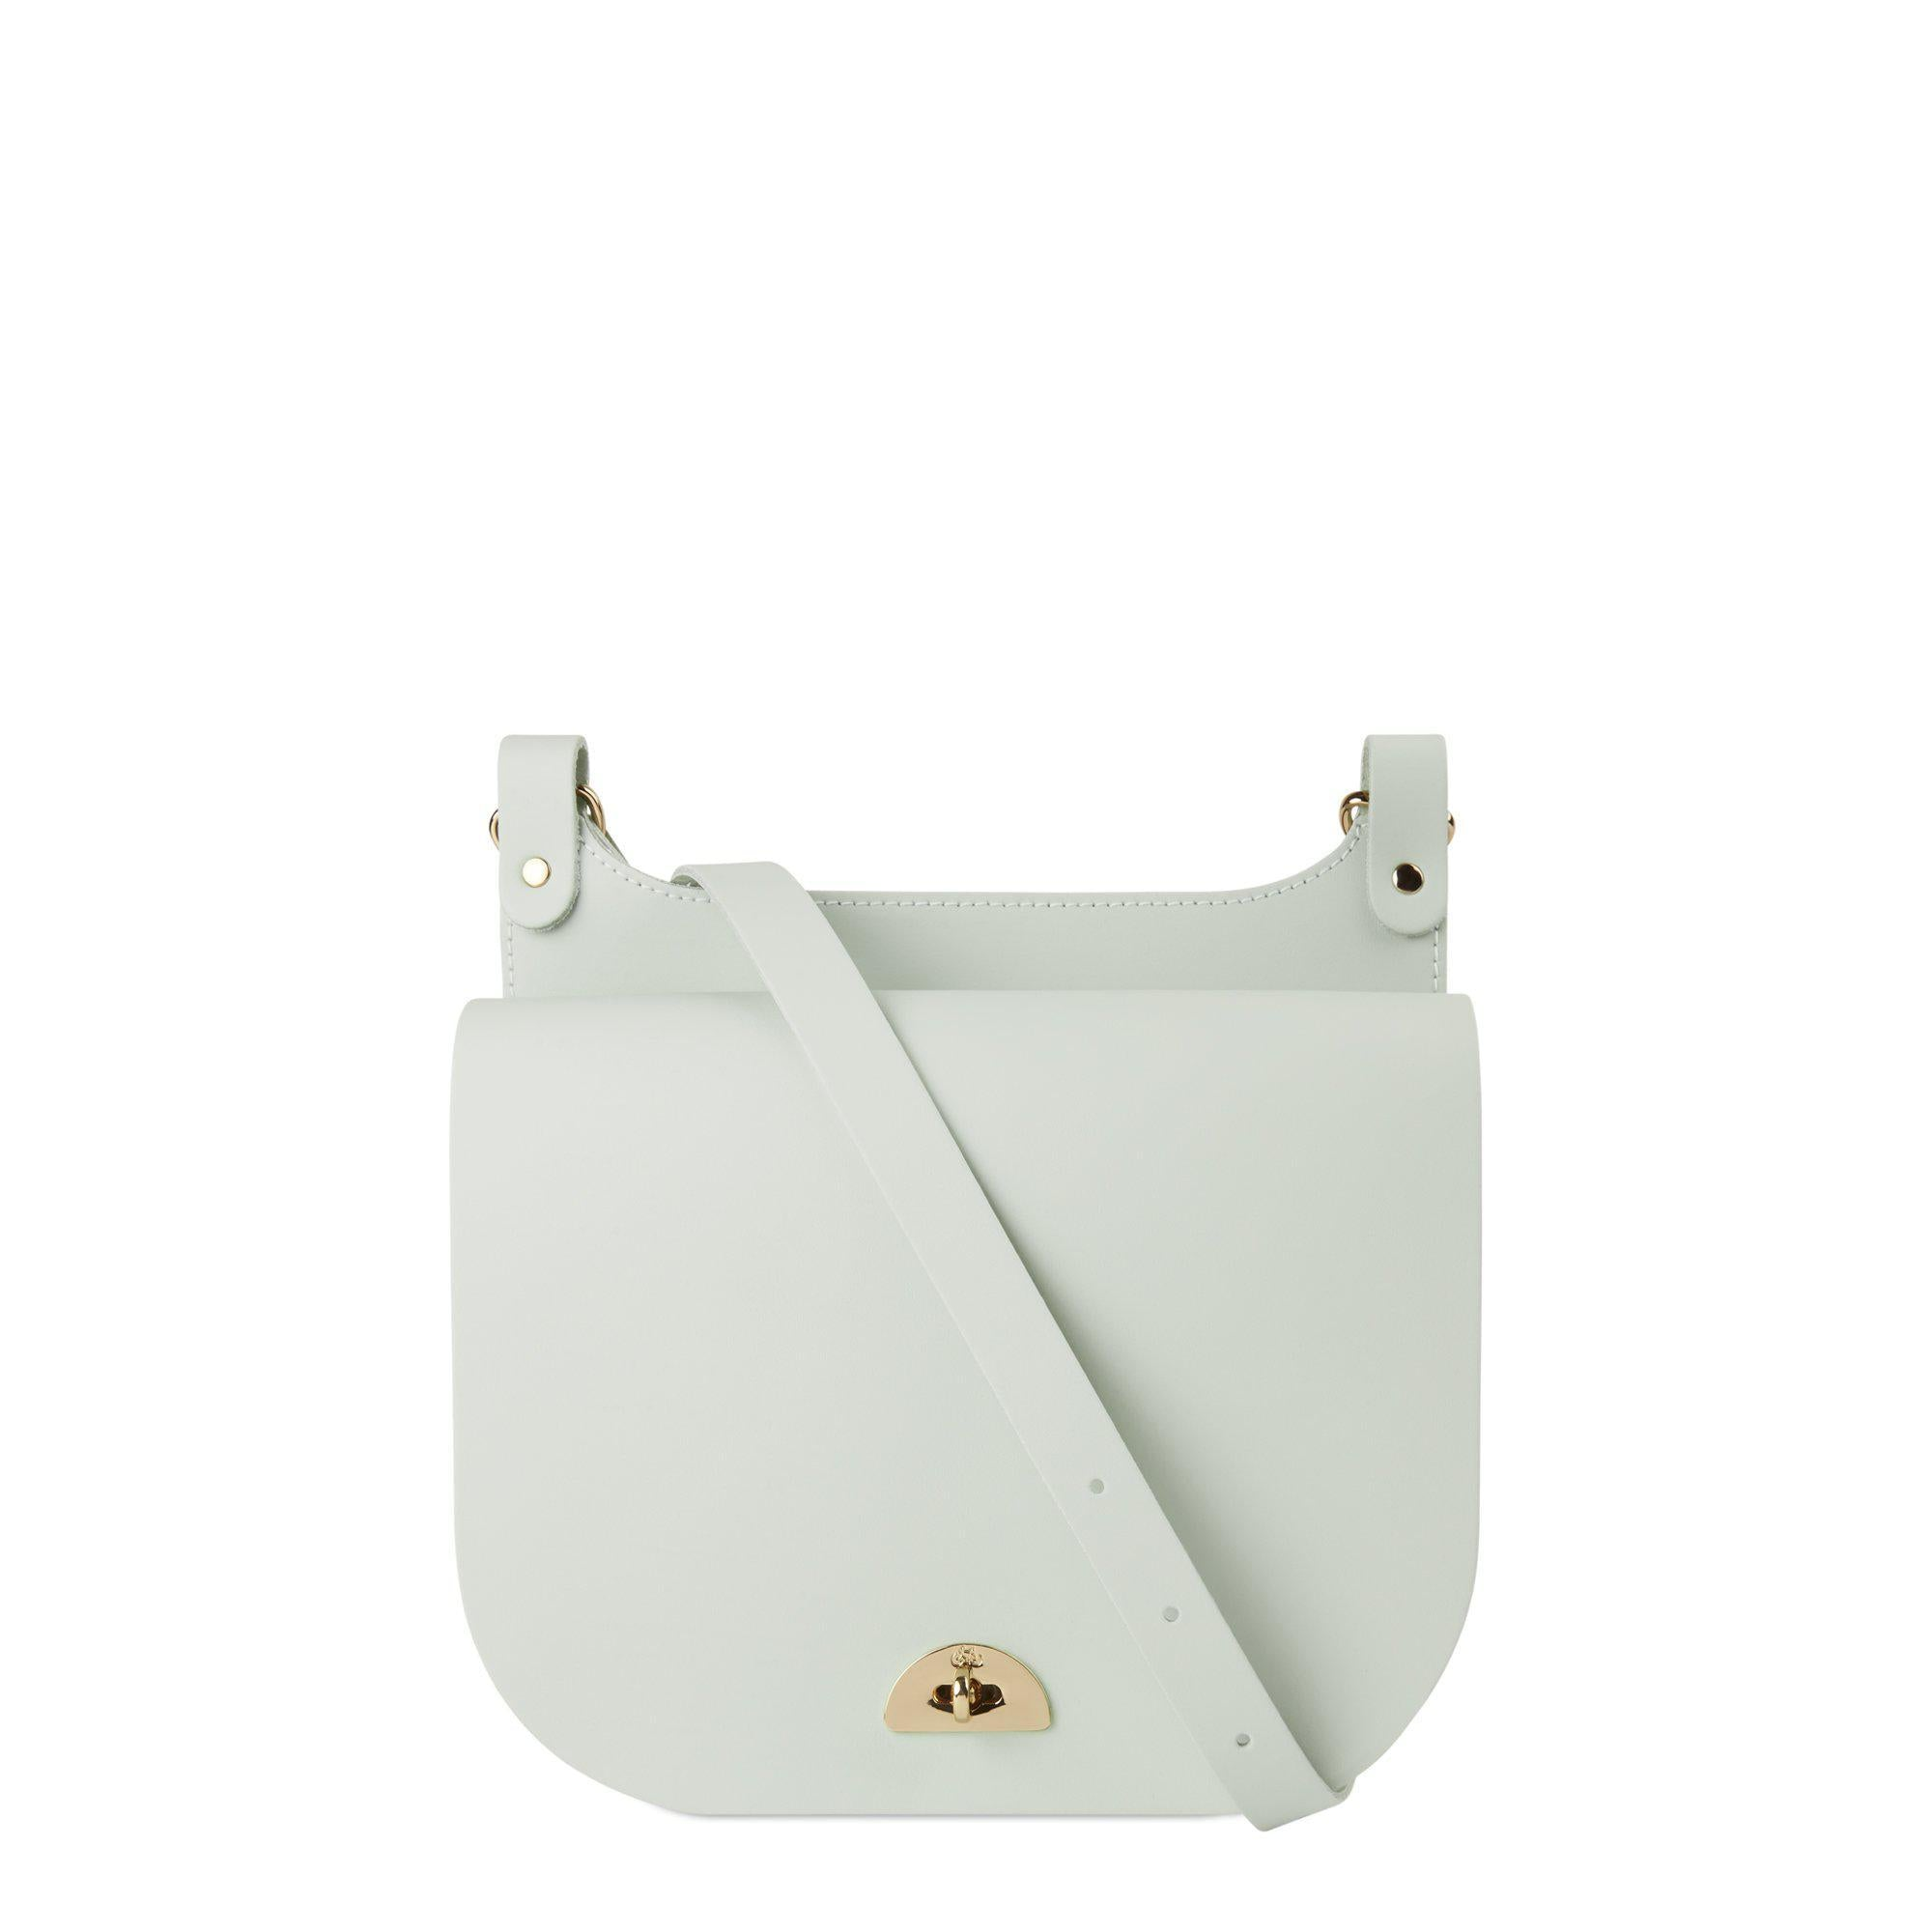 Conductors Bag in Leather - Matte Eggshell